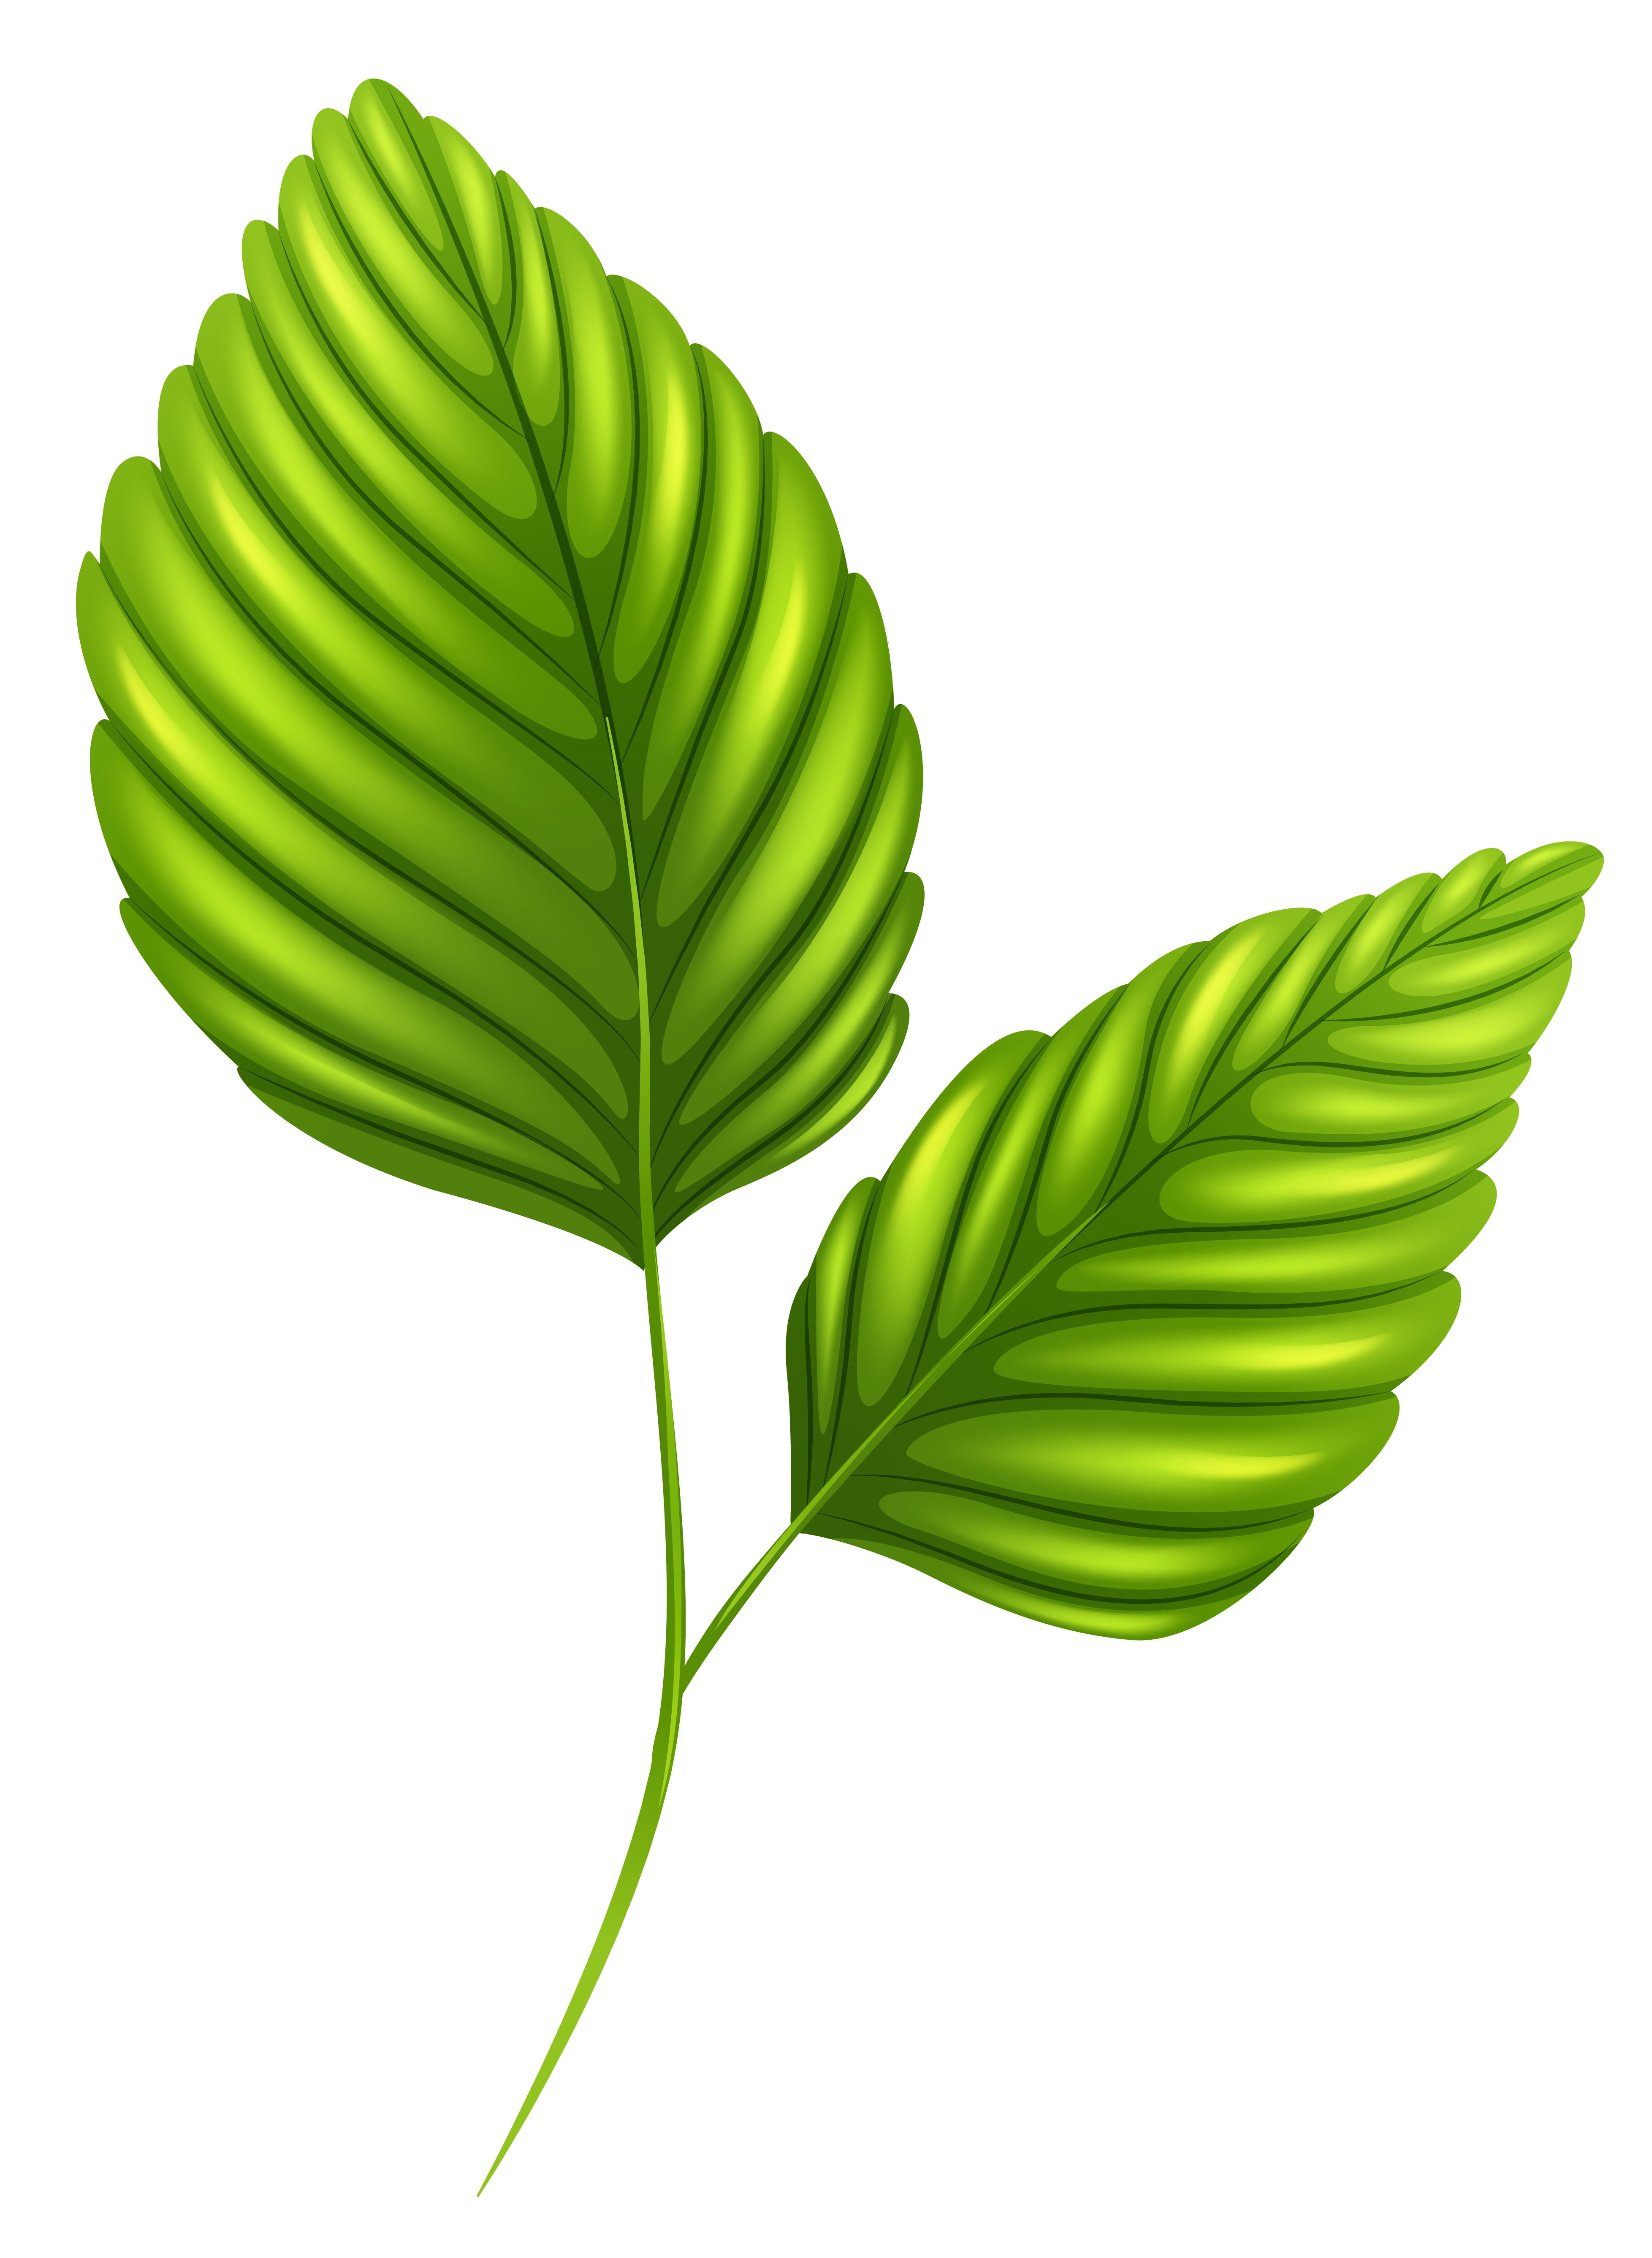 2 clipart leaf. Two green leaves png